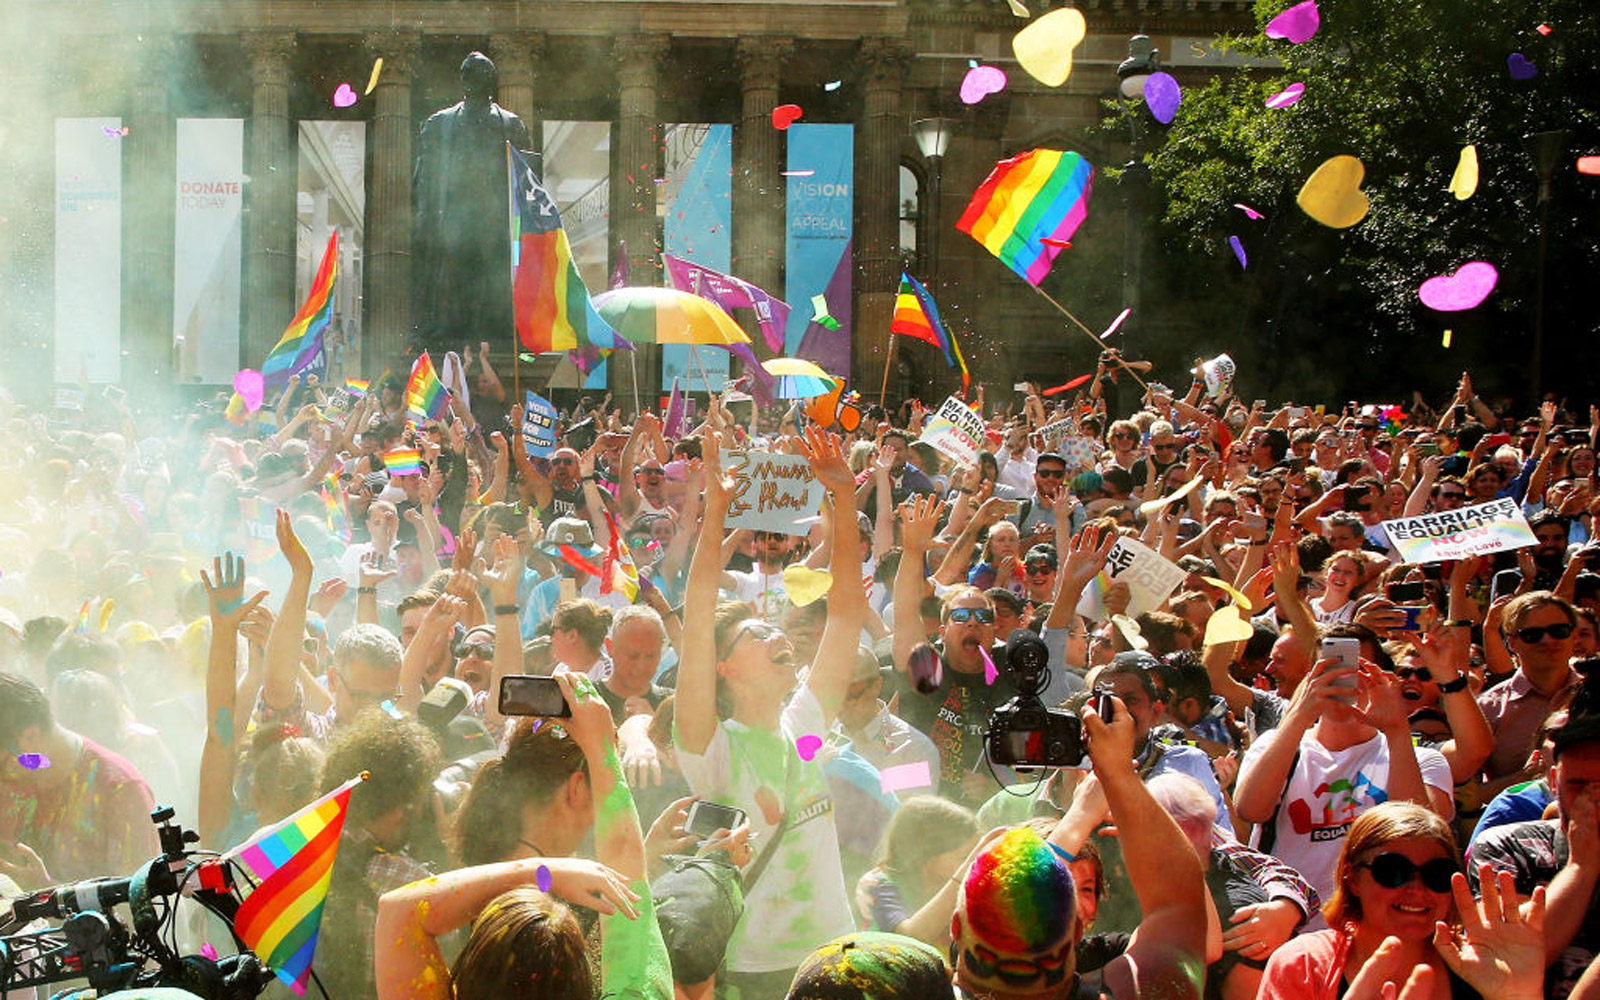 Australians Gather To Hear Result Of Marriage Equality Survey